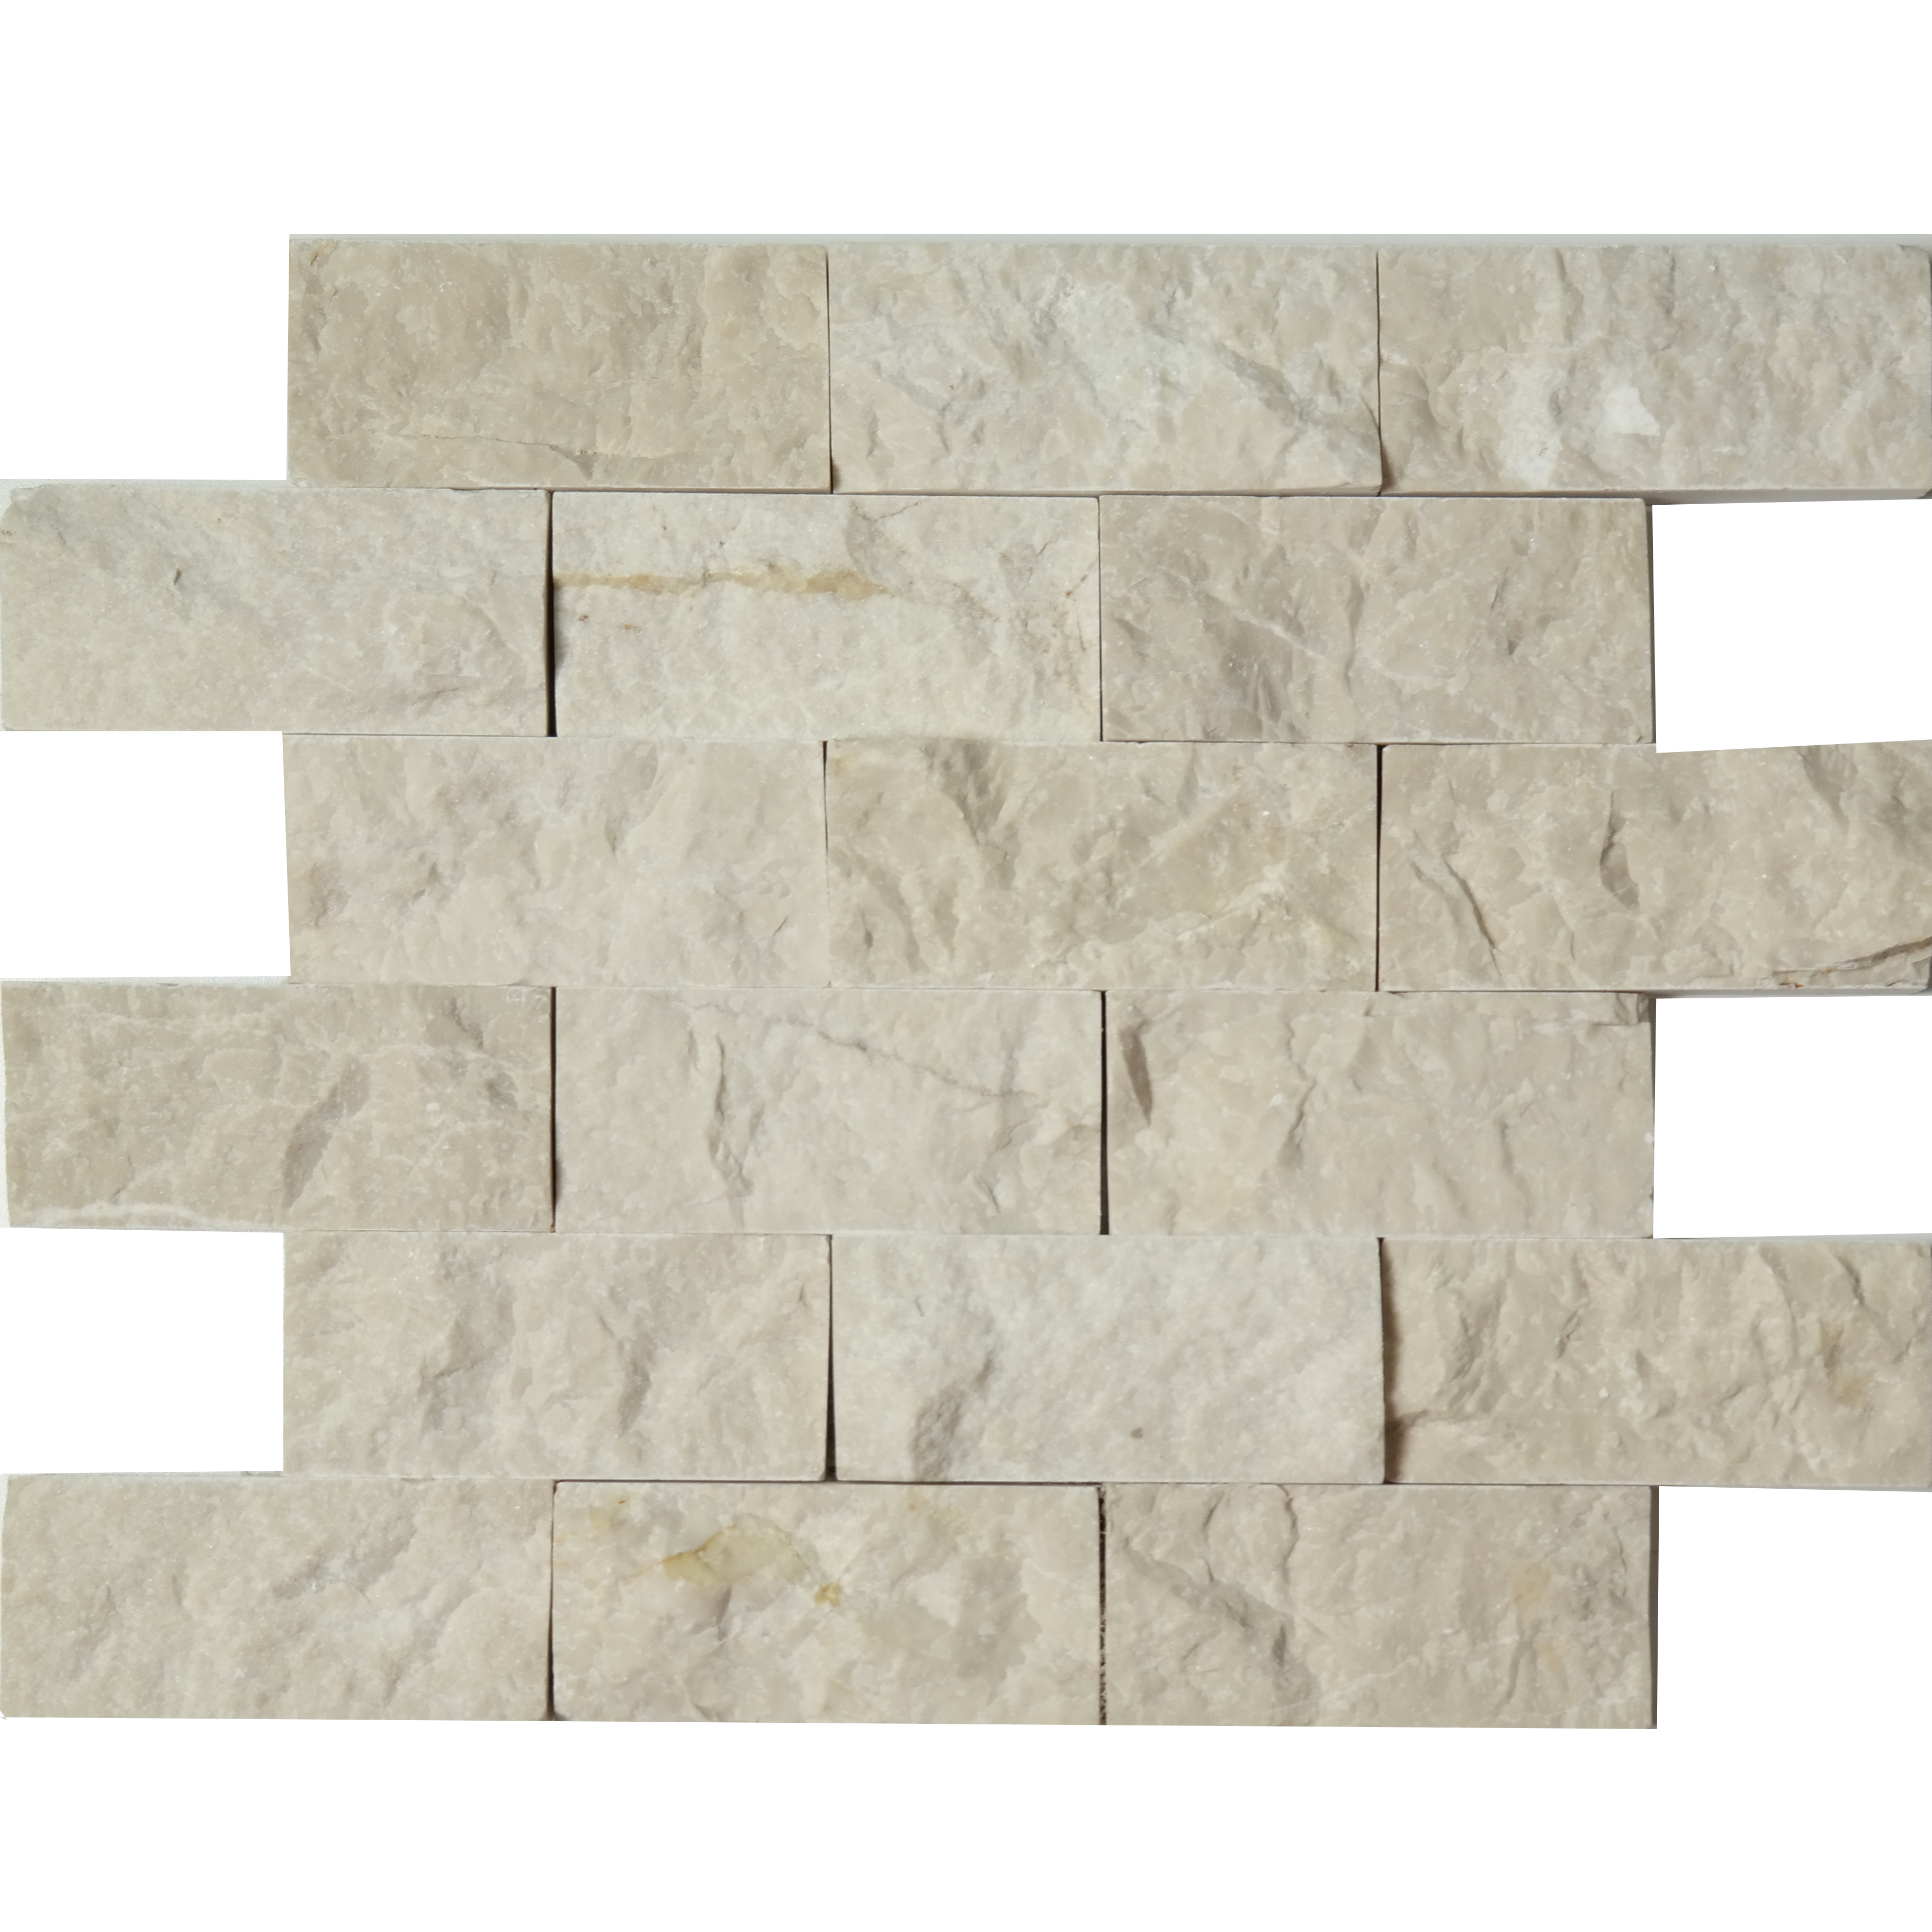 2x4 Split Face Mosaic Bottichino Marble